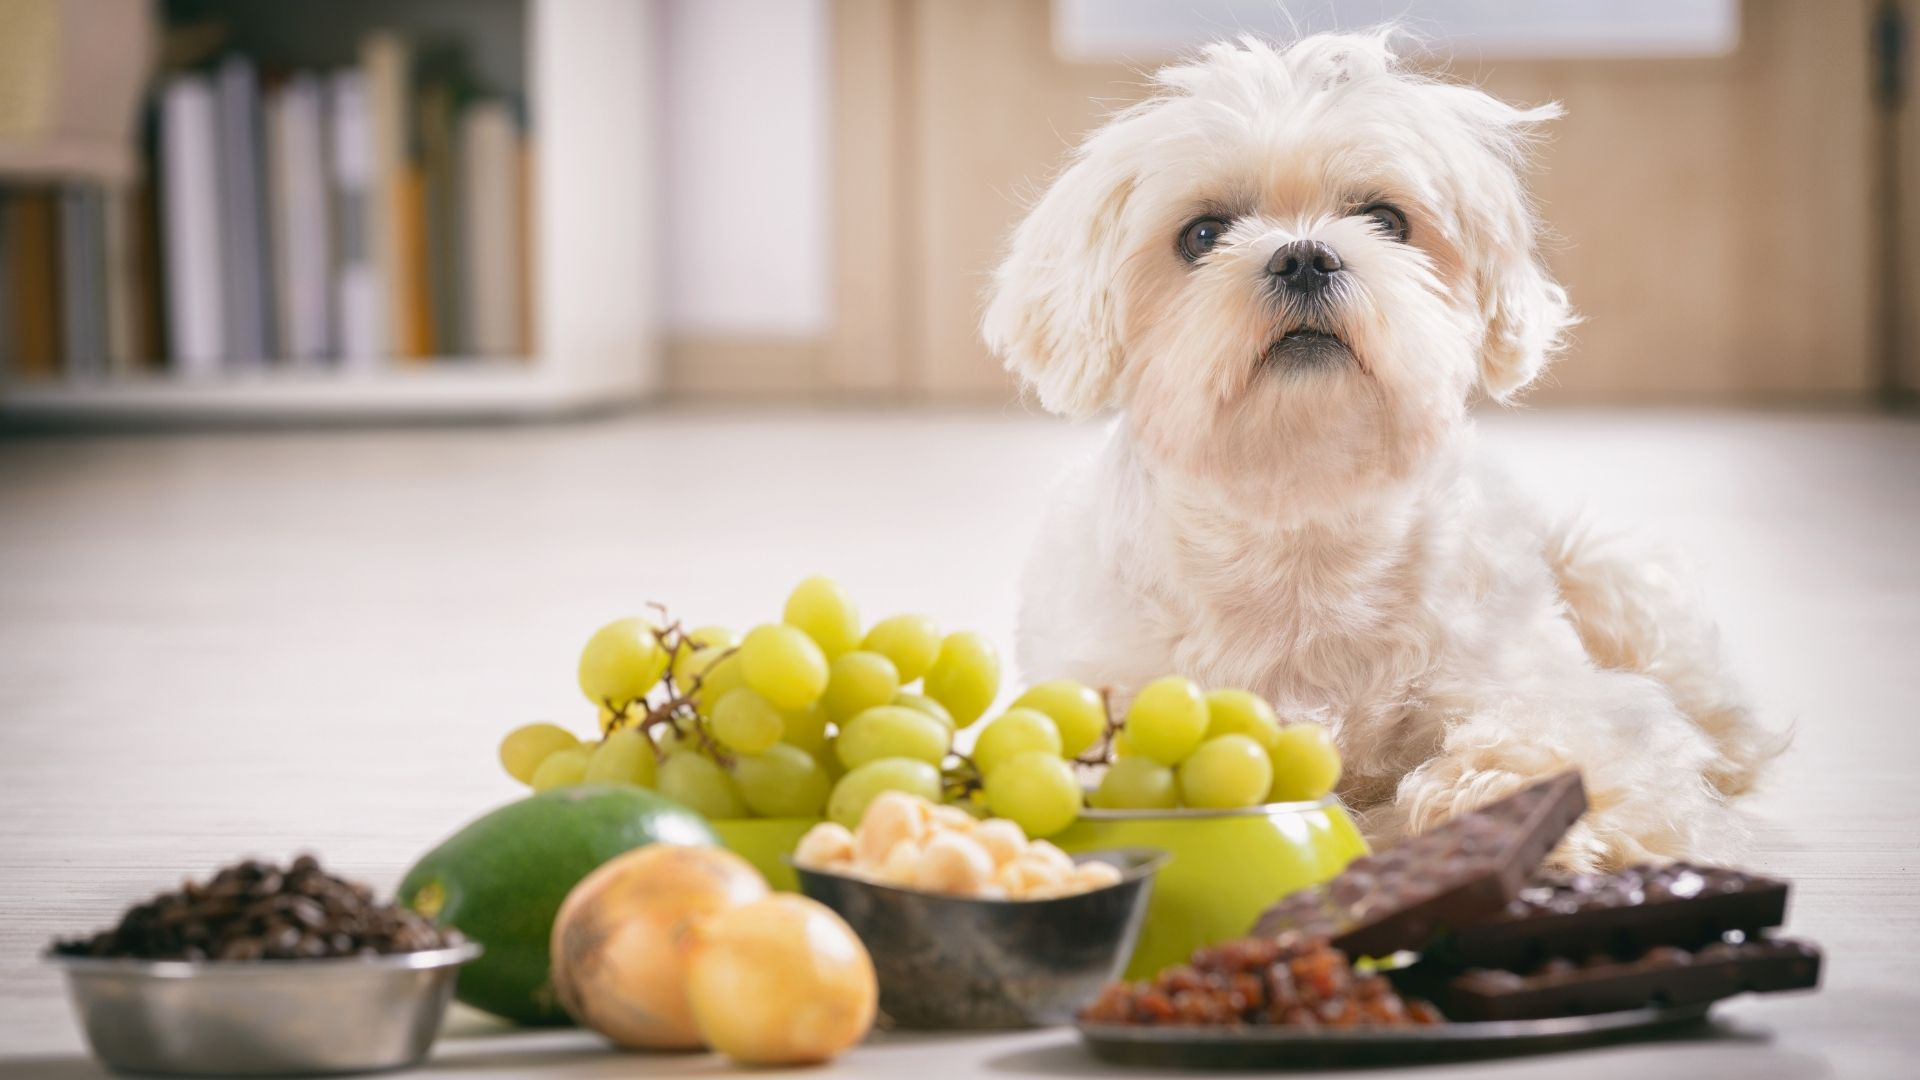 Chocolate, grapes, garlic, and tomatoes are all toxic to cats and dogs. Besides these, even tiny amounts of...